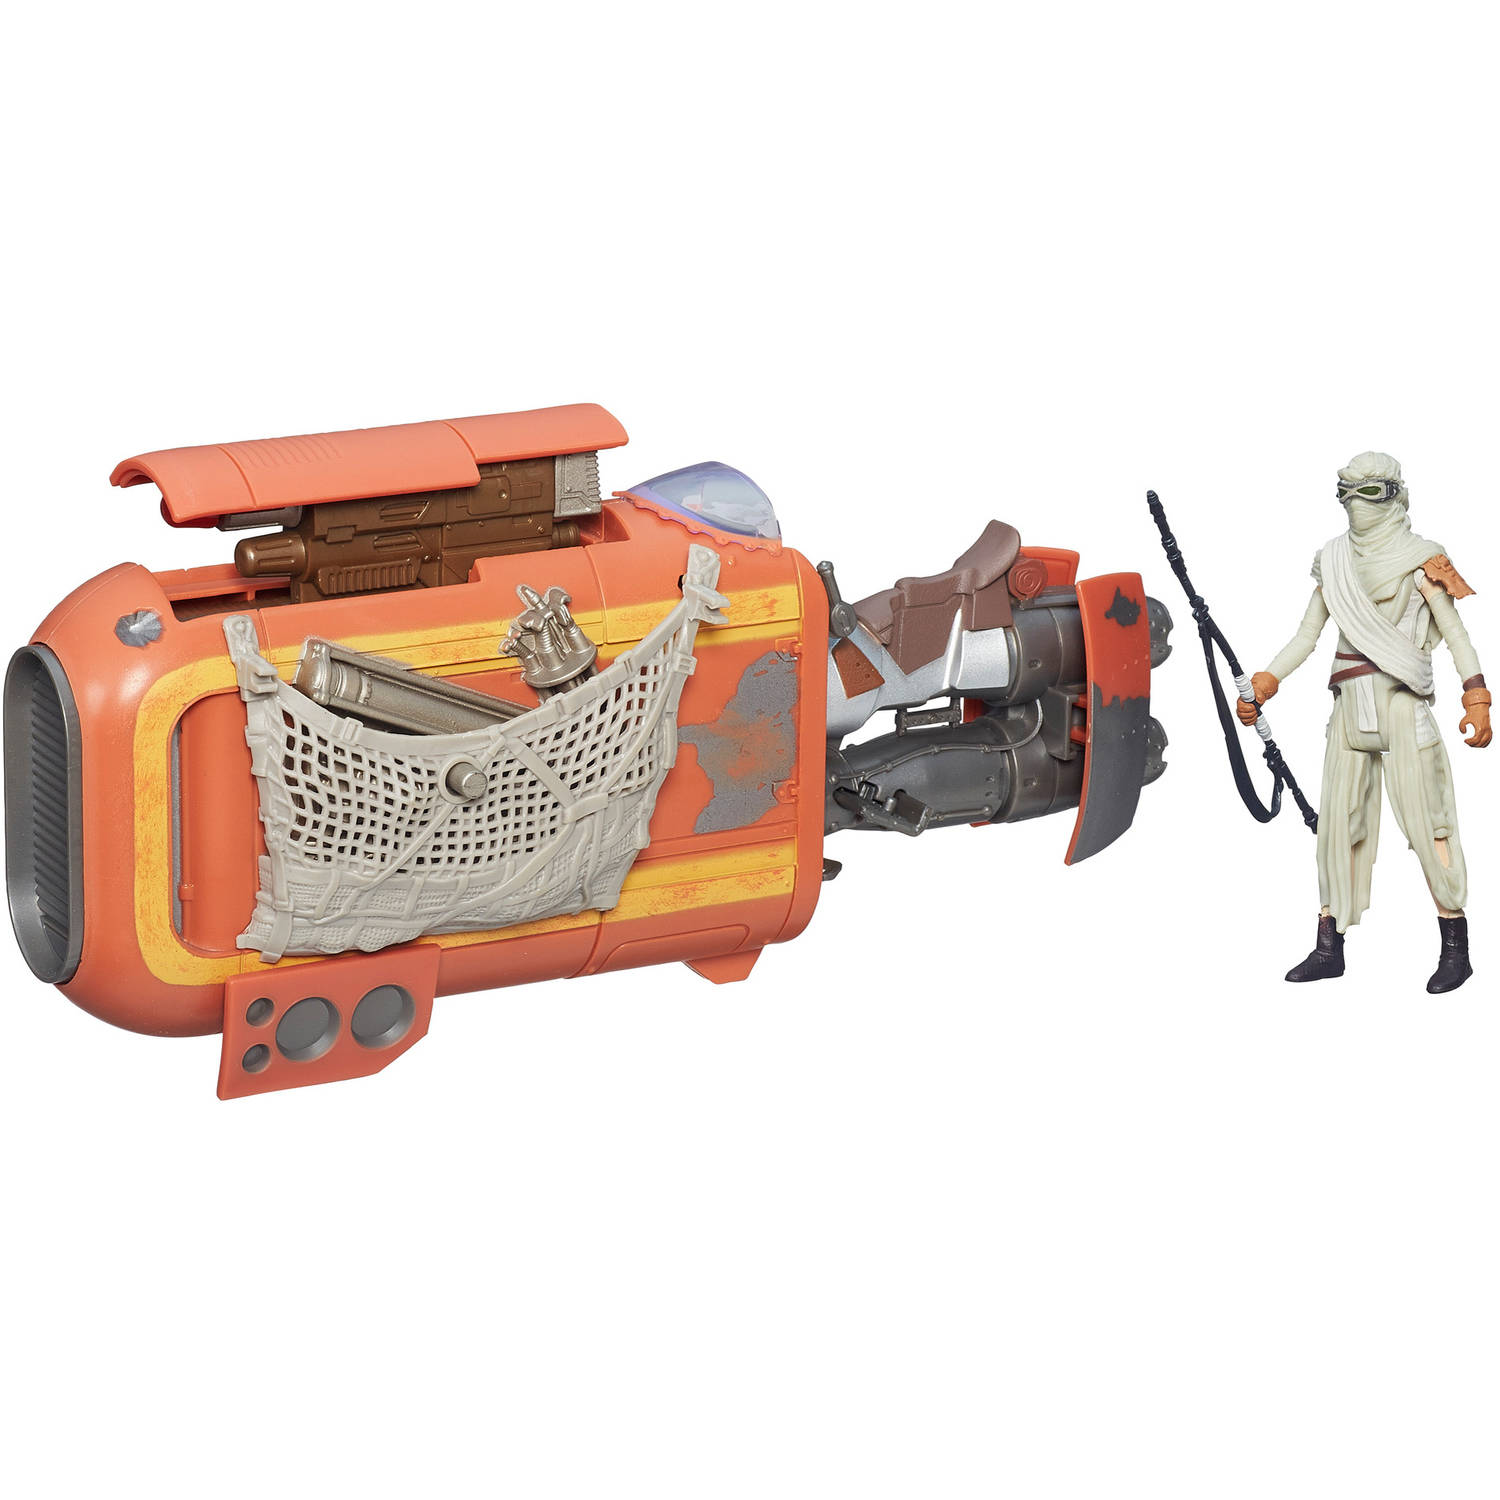 "Star Wars The Force Awakens 3.75"" Vehicle Rey's Speeder Bike (Jakku)"